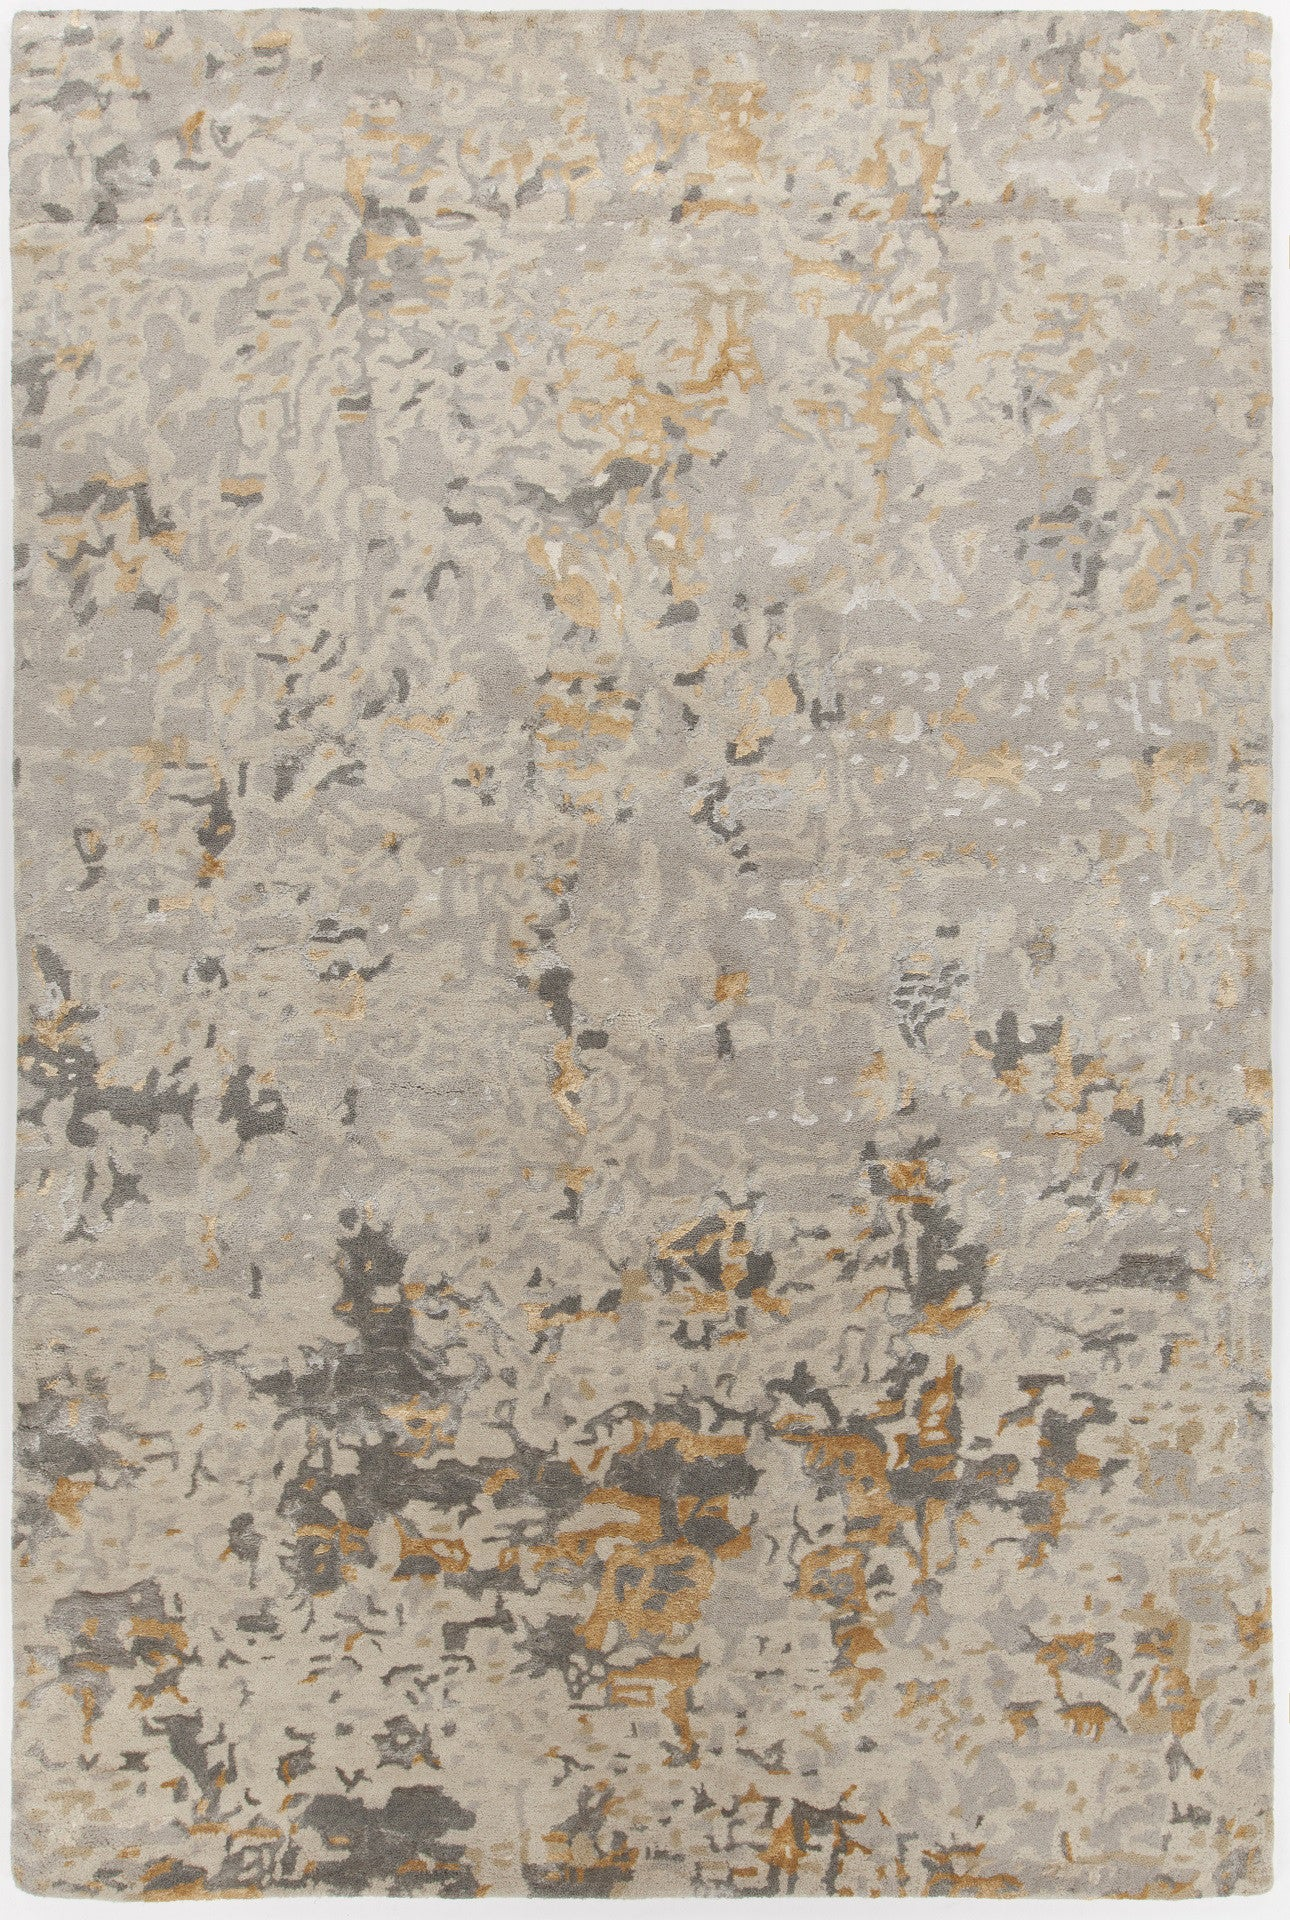 Chandra Rupec RUP-39631 Beige/Grey/Gold Area Rug main image